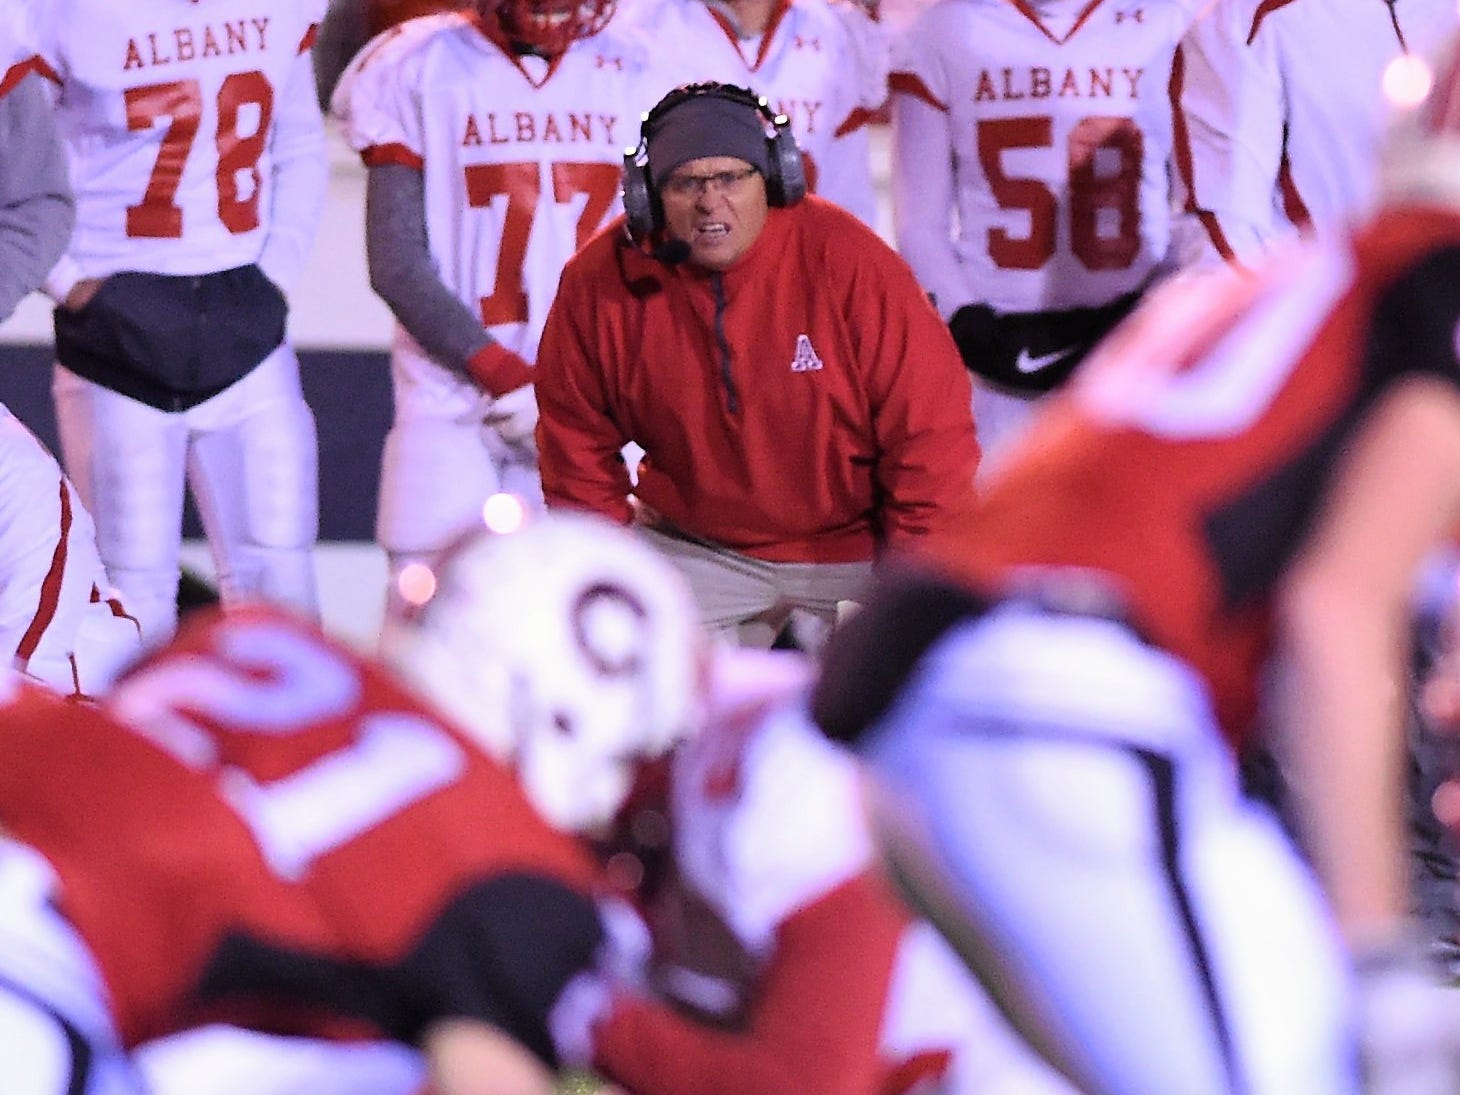 Albany coach Denney Faith watches a play against Gruver in the Class 2A Division II state semifinal at Sherwood Memorial Bulldog Stadium in Plainview on Thursday, Dec. 13, 2018.